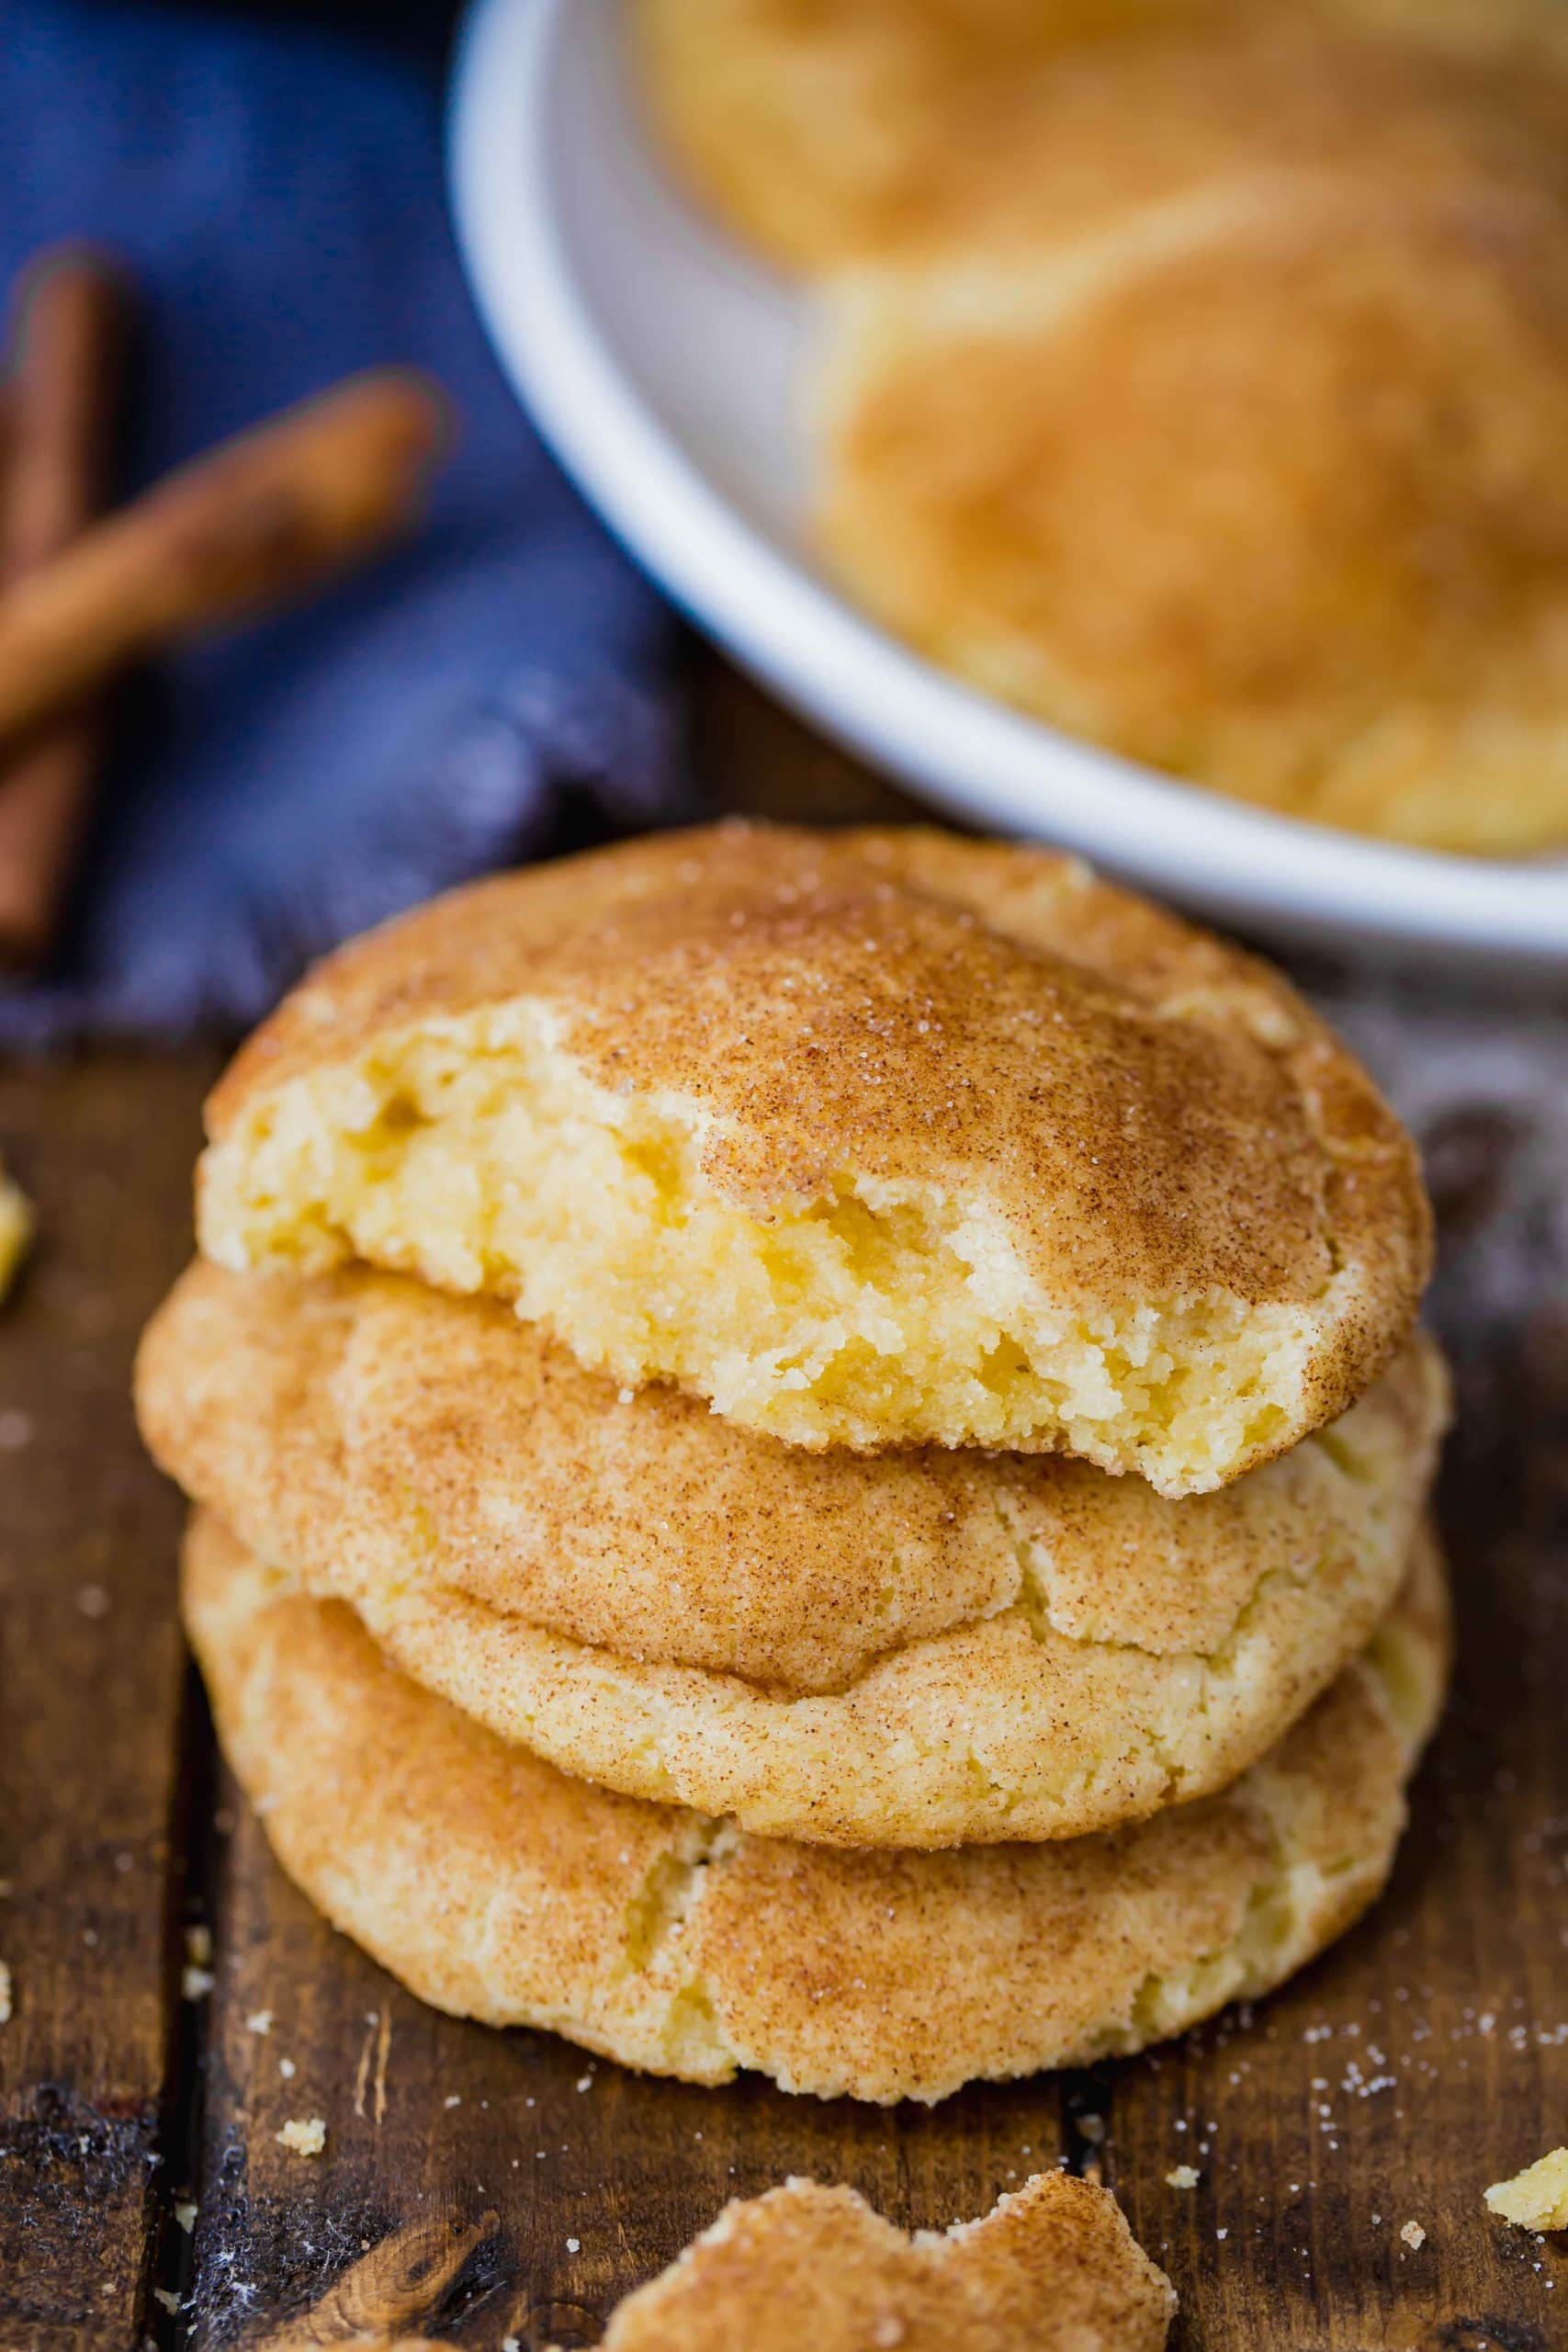 a photo of a stack of three soft and chewy snickerdoodle cookies with the top cookie broken in half.